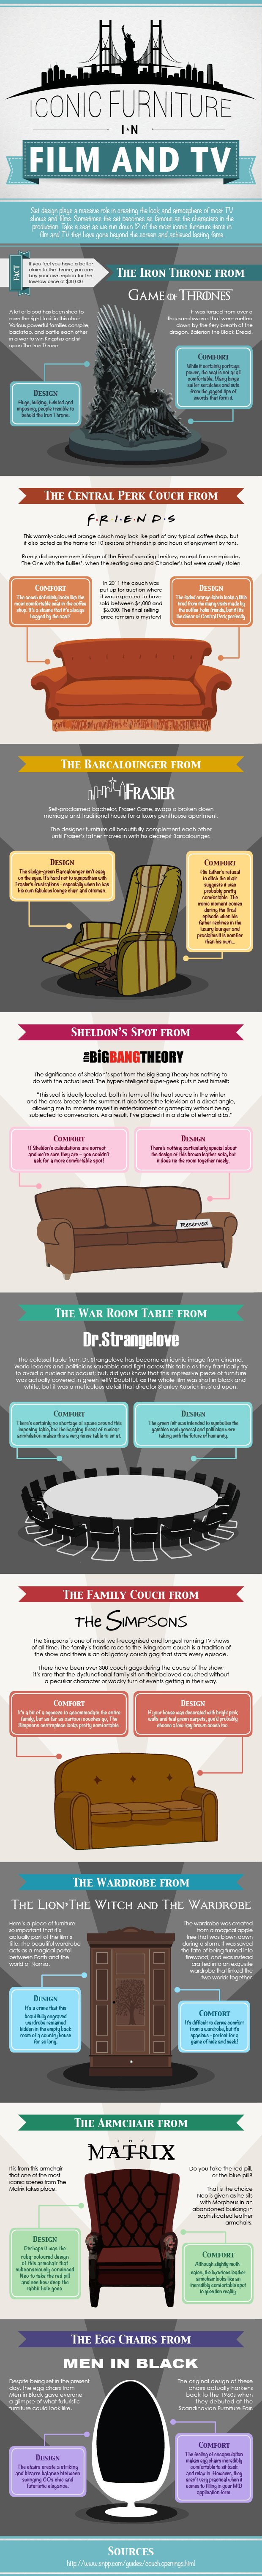 Iconic furniture in Film and TV-final-alternative